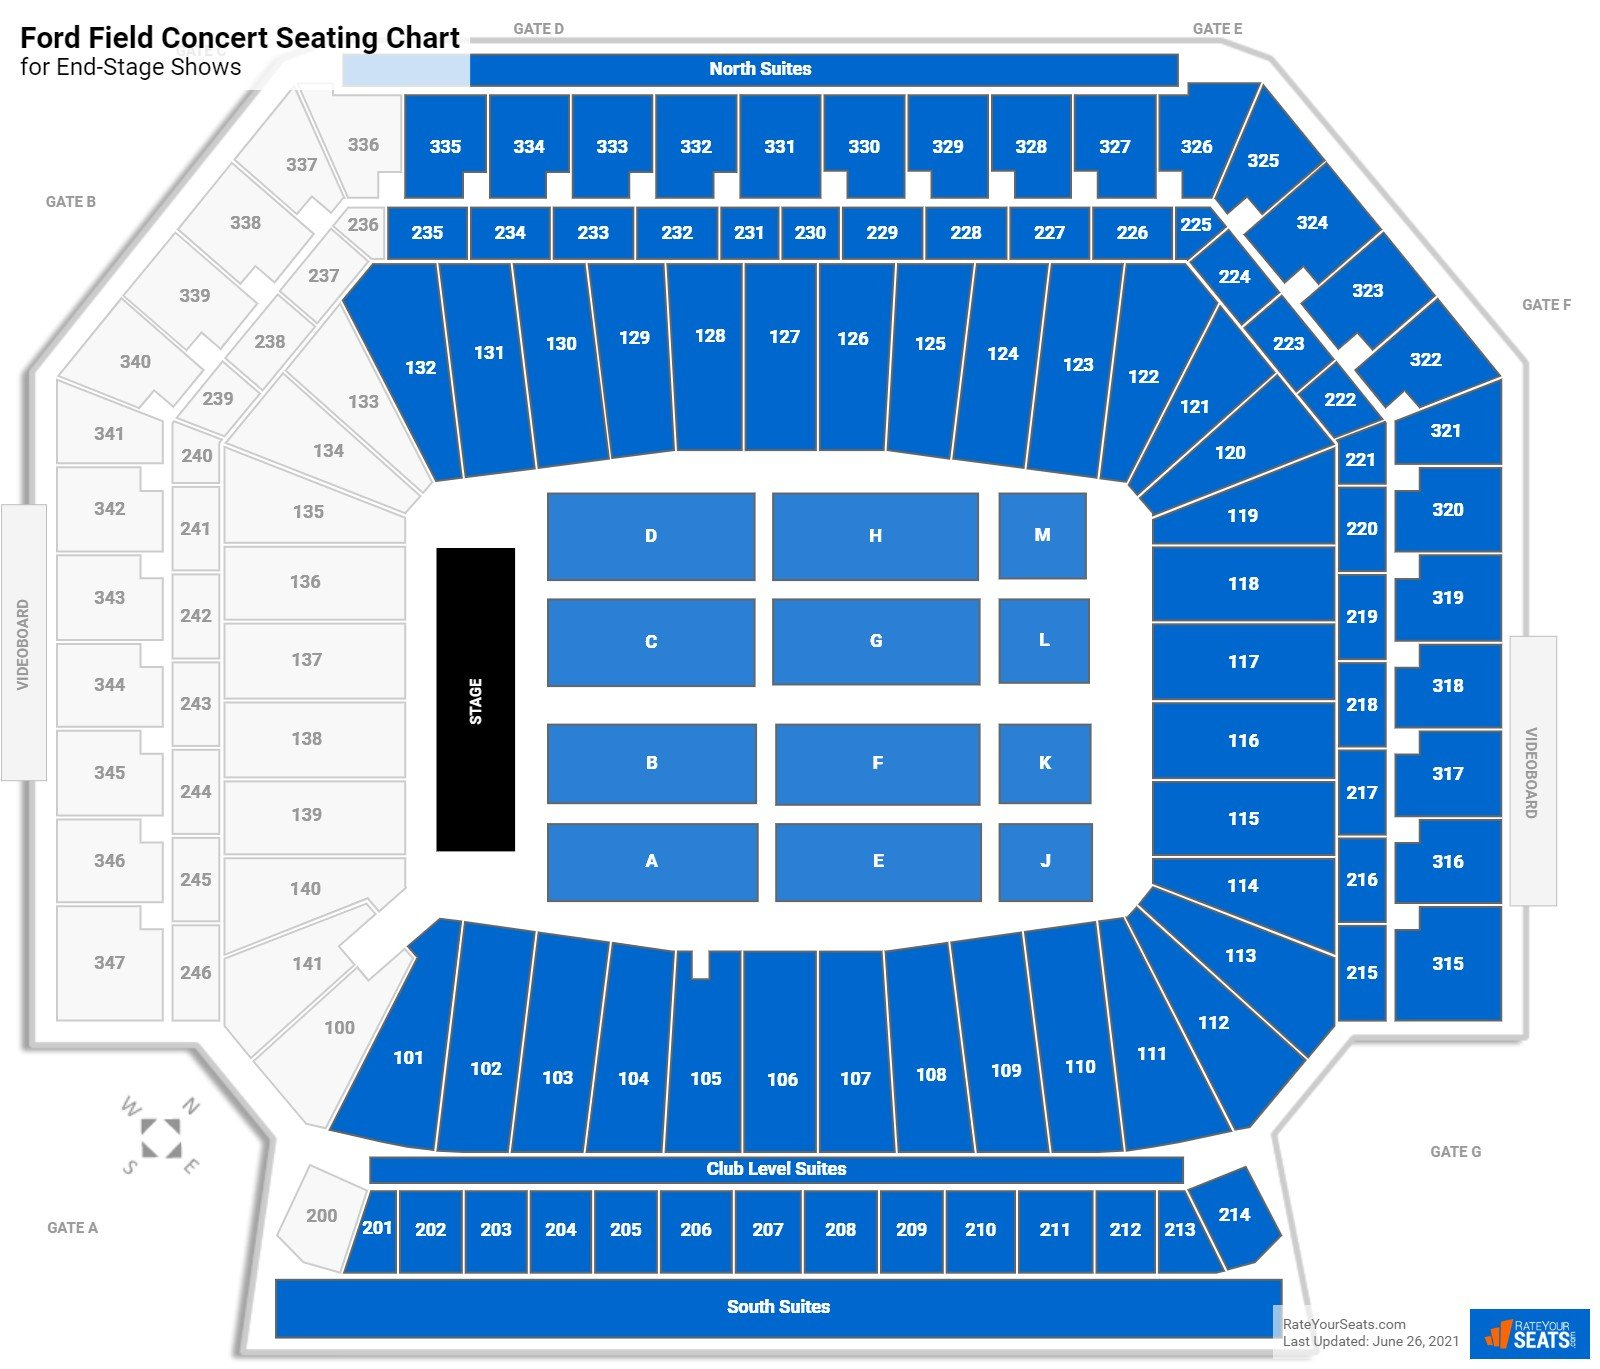 Ford Field Seating Chart for Concerts